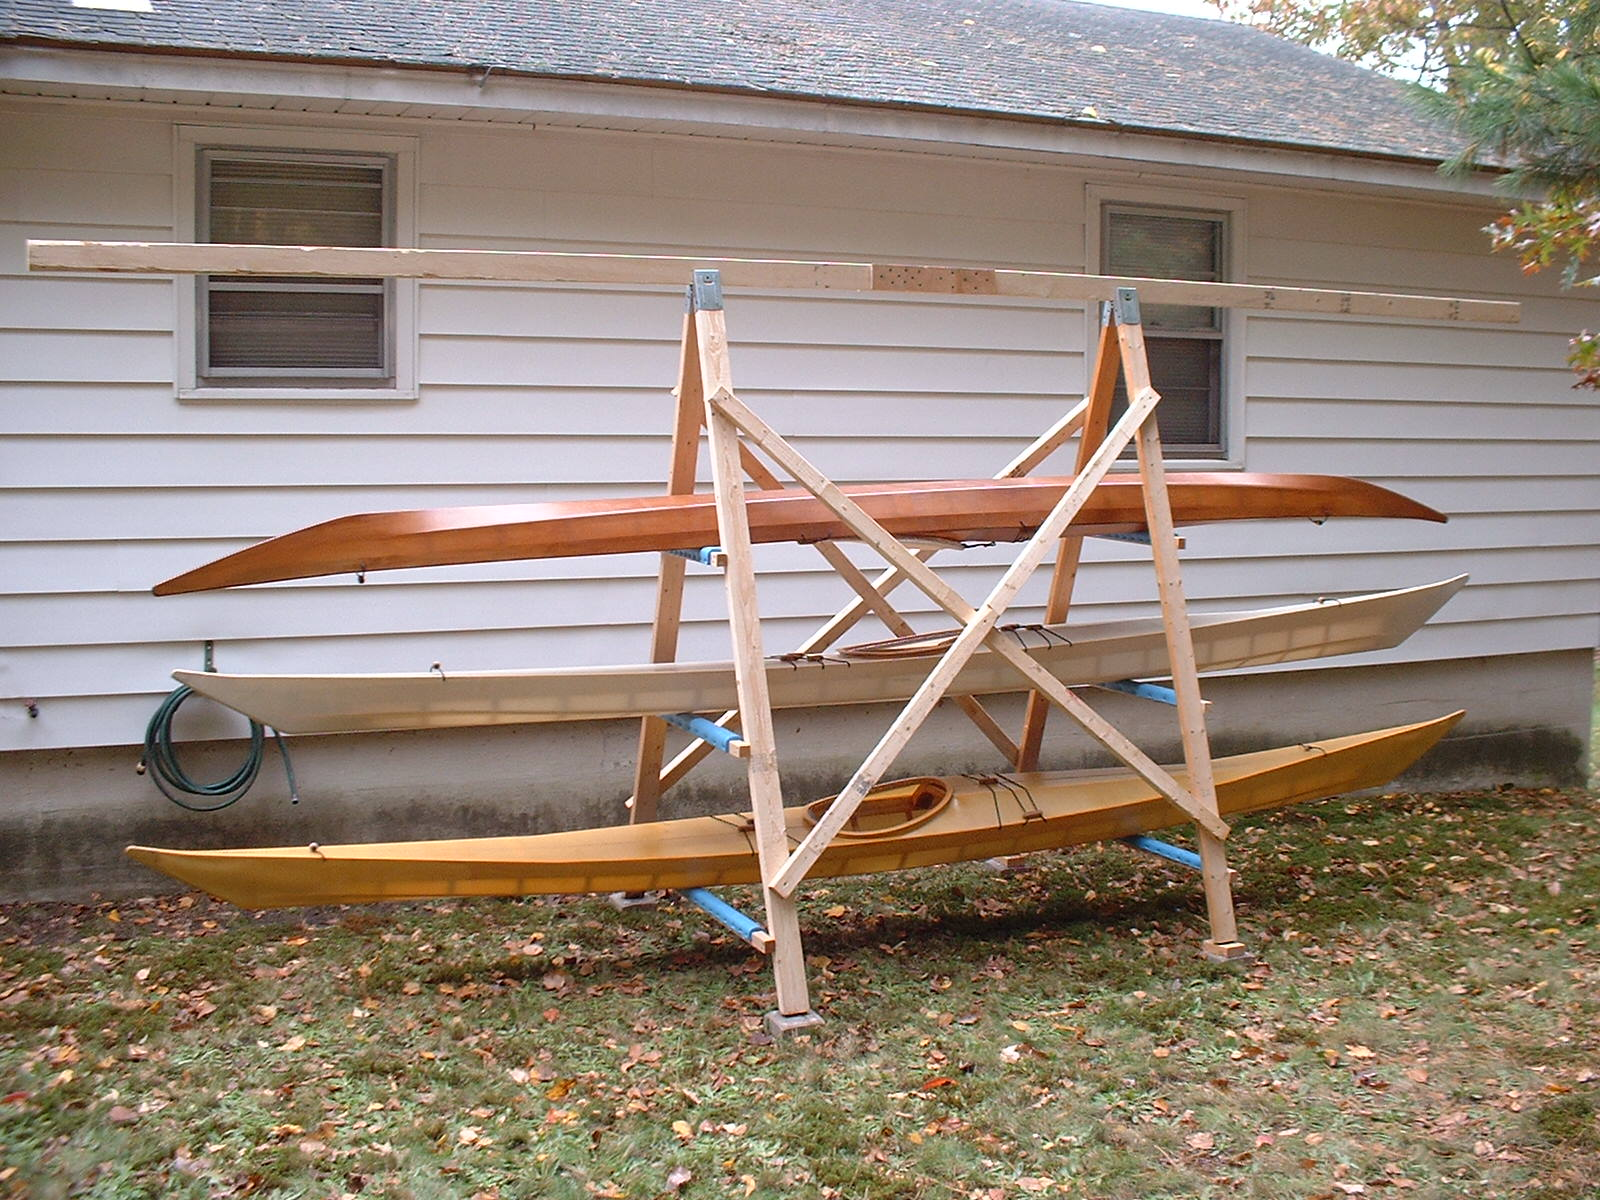 Overview of a simple, A-frame kayak storage rack